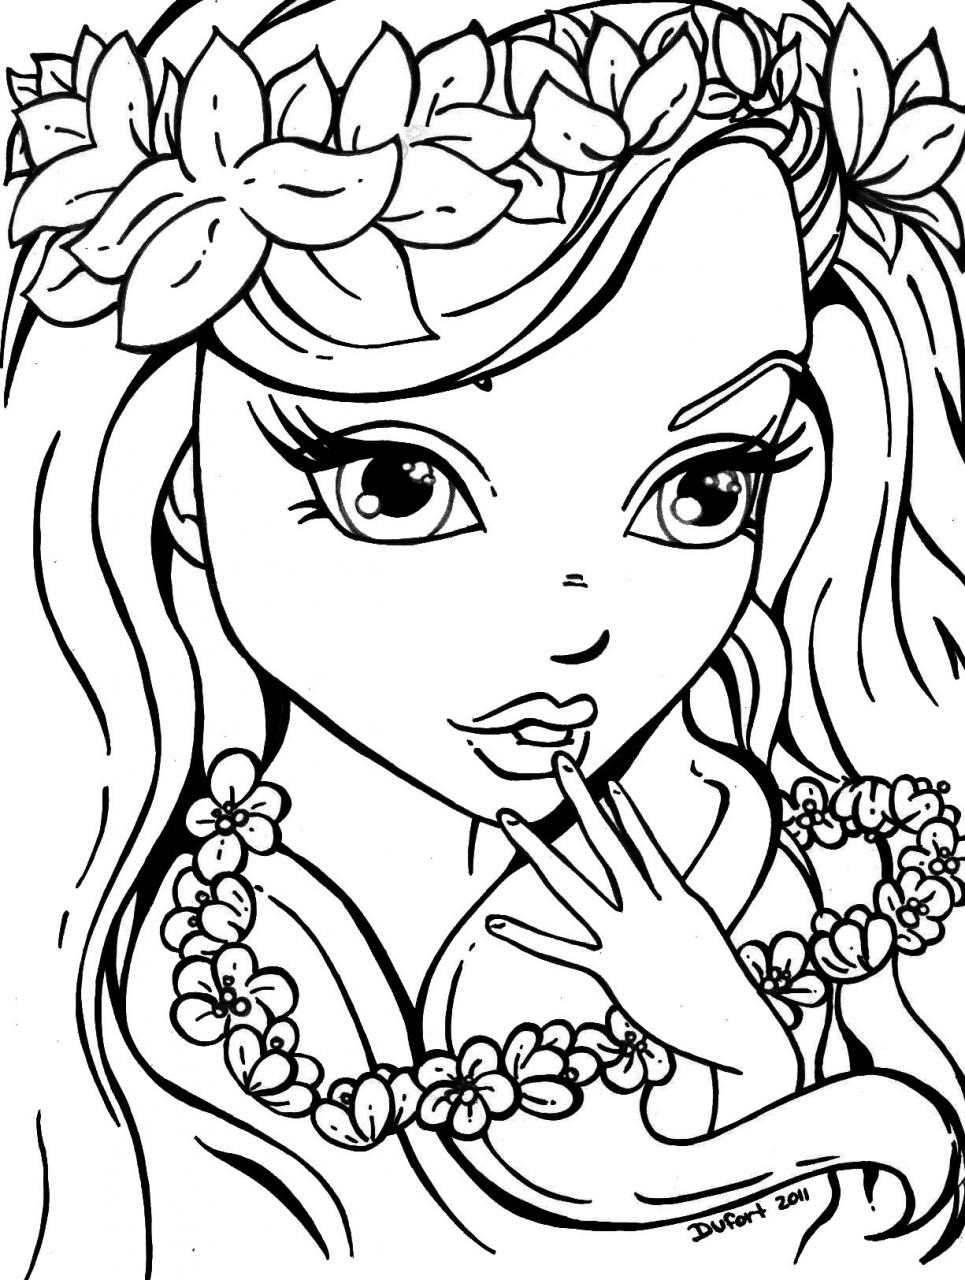 coloring picture people coloring pages for girls best coloring pages for kids coloring picture people